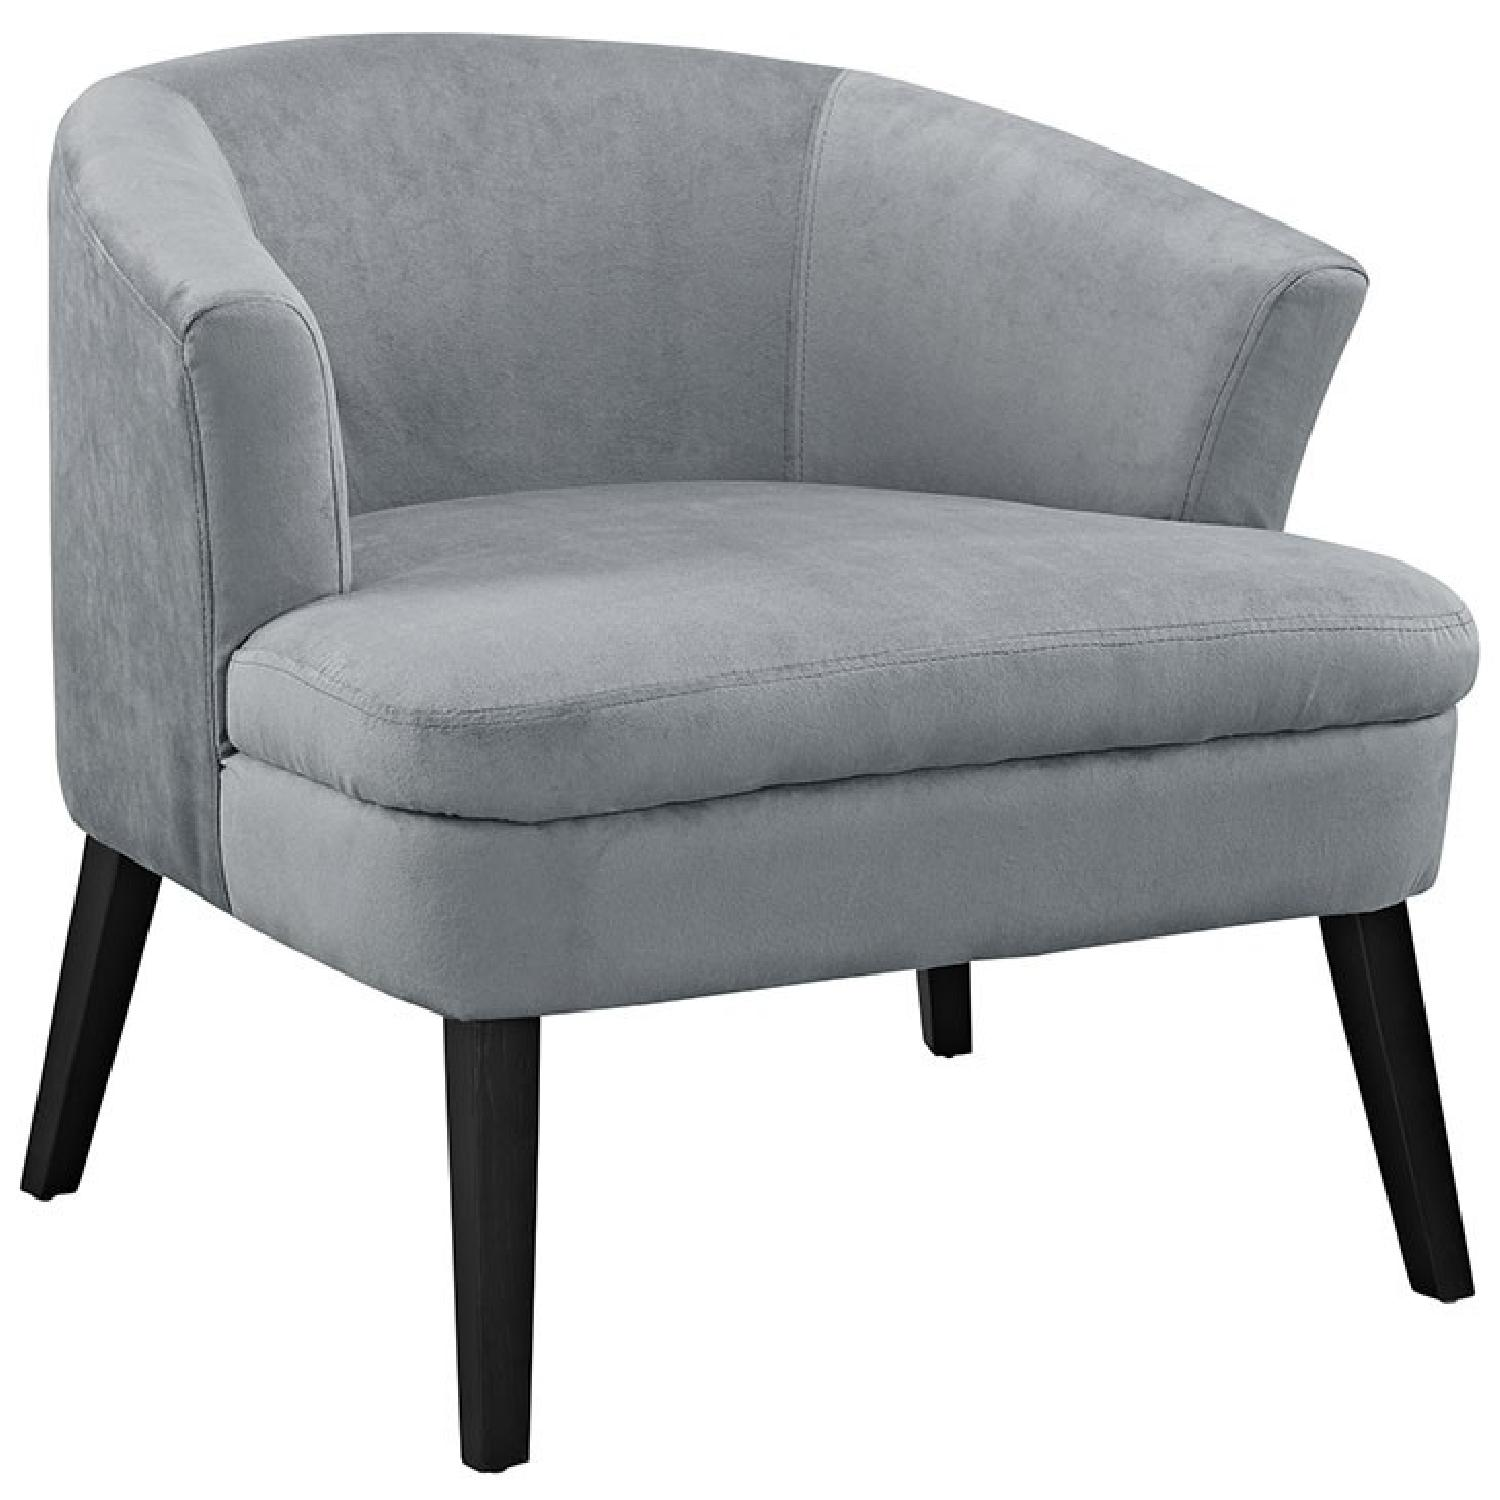 Gray Armchair - image-0